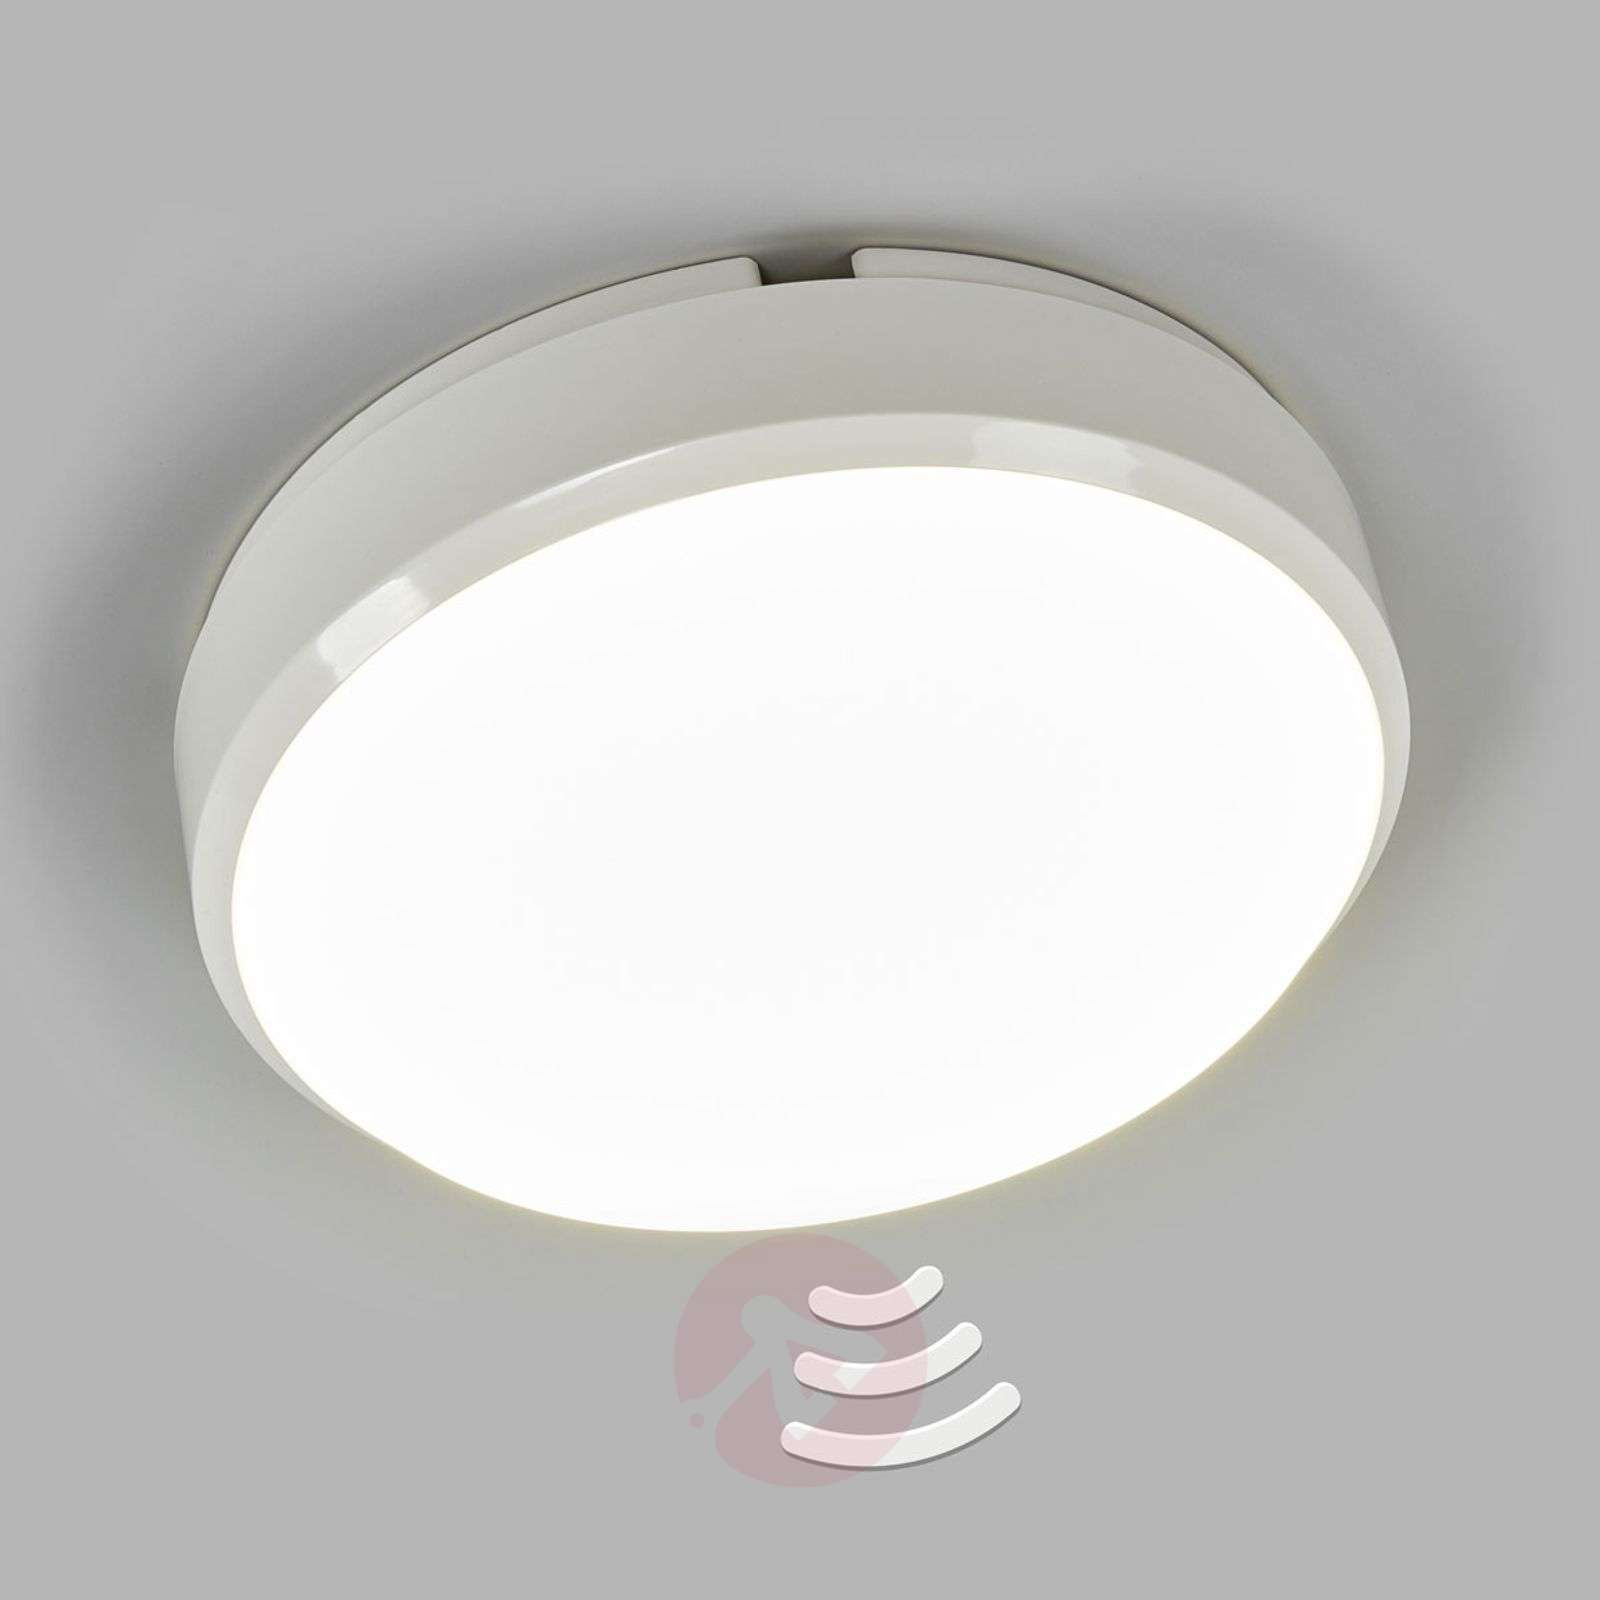 Plafoniera Led Soffitto 150 Cm : Acquista plafoniera led da soffitto bulkhead sensore lampade.it